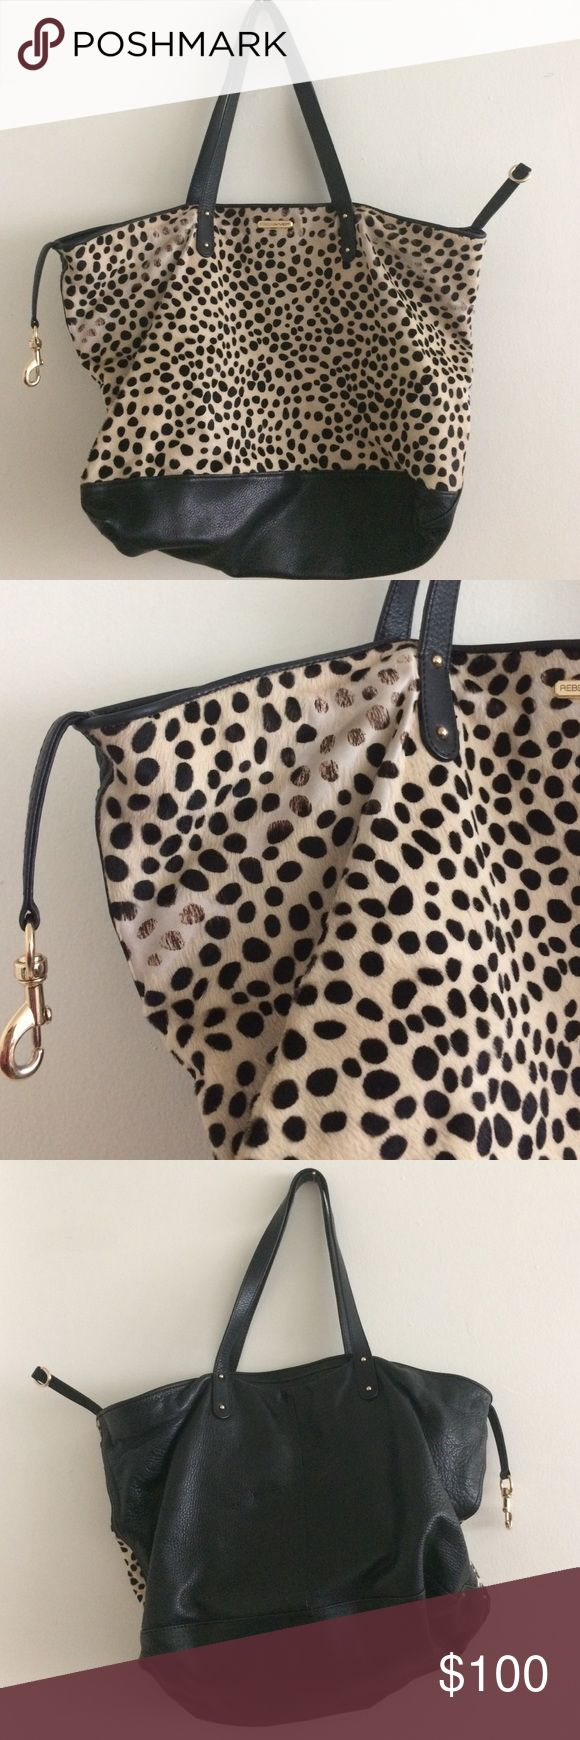 Rebecca minkoff vow hair and leather purse Black leather mixed with spot cow hair. Big bad with interior zip pocket. Cow hair is rubbing off on some places otherwise good condition Rebecca Minkoff Bags Totes